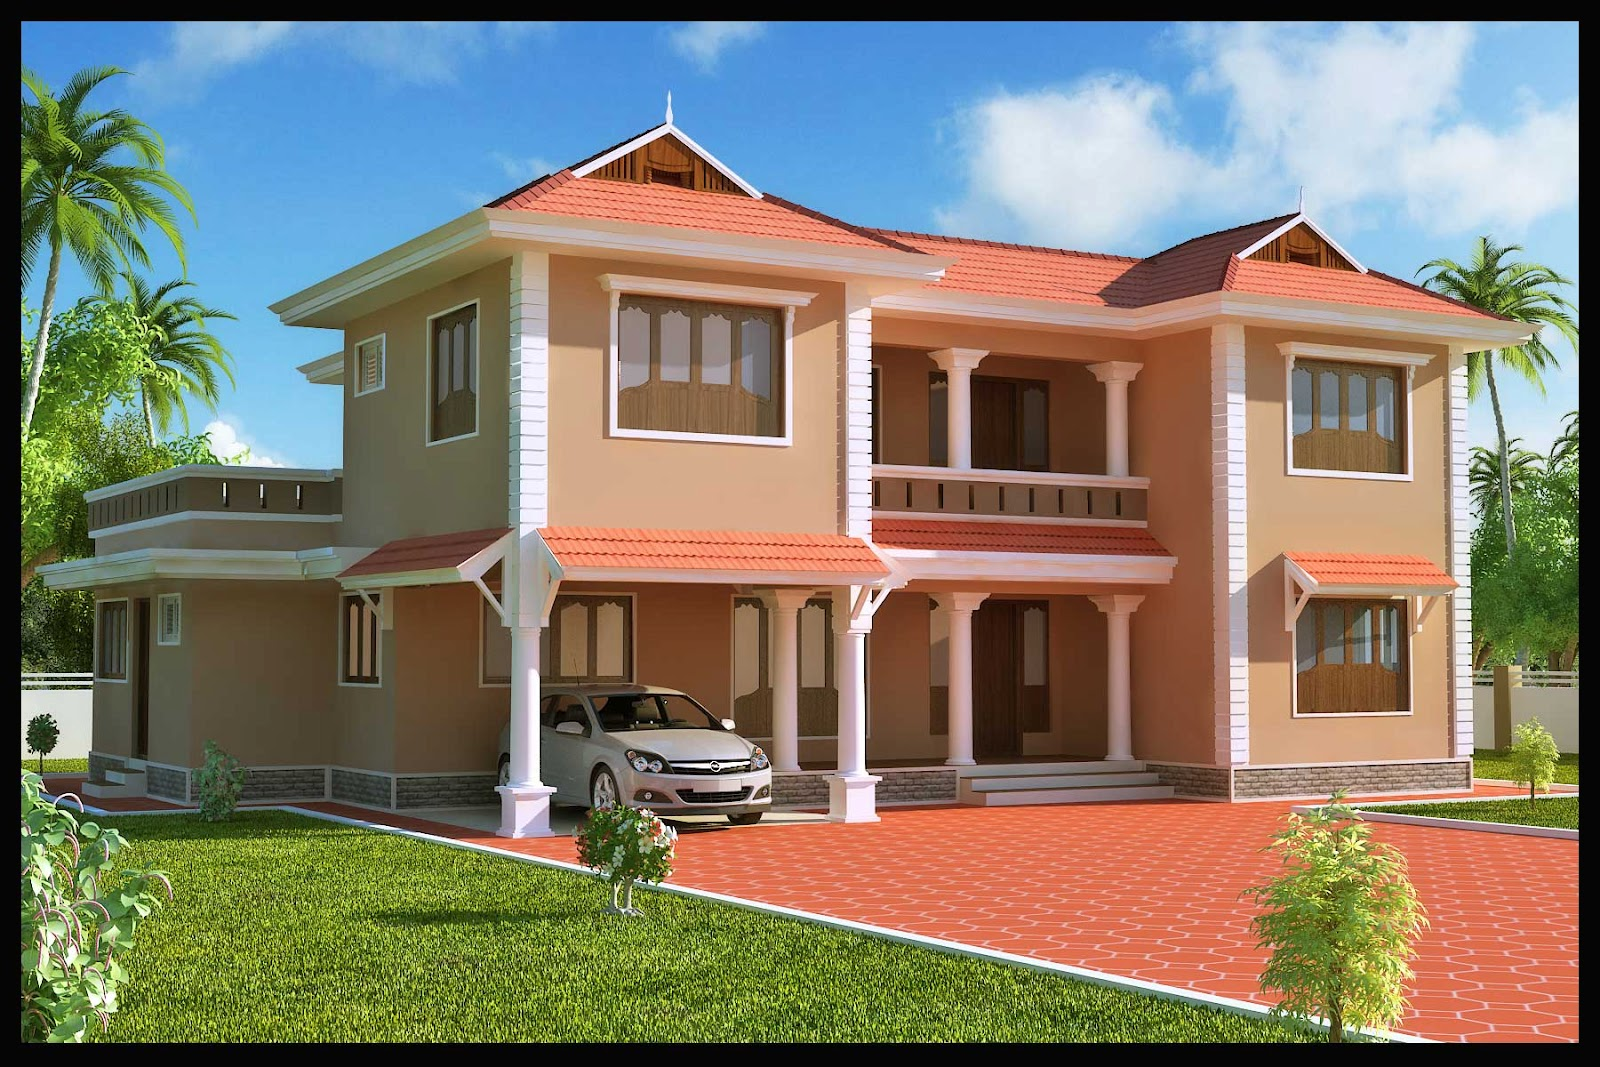 Kerala building construction 4 bhk villa for Indian home exterior designs